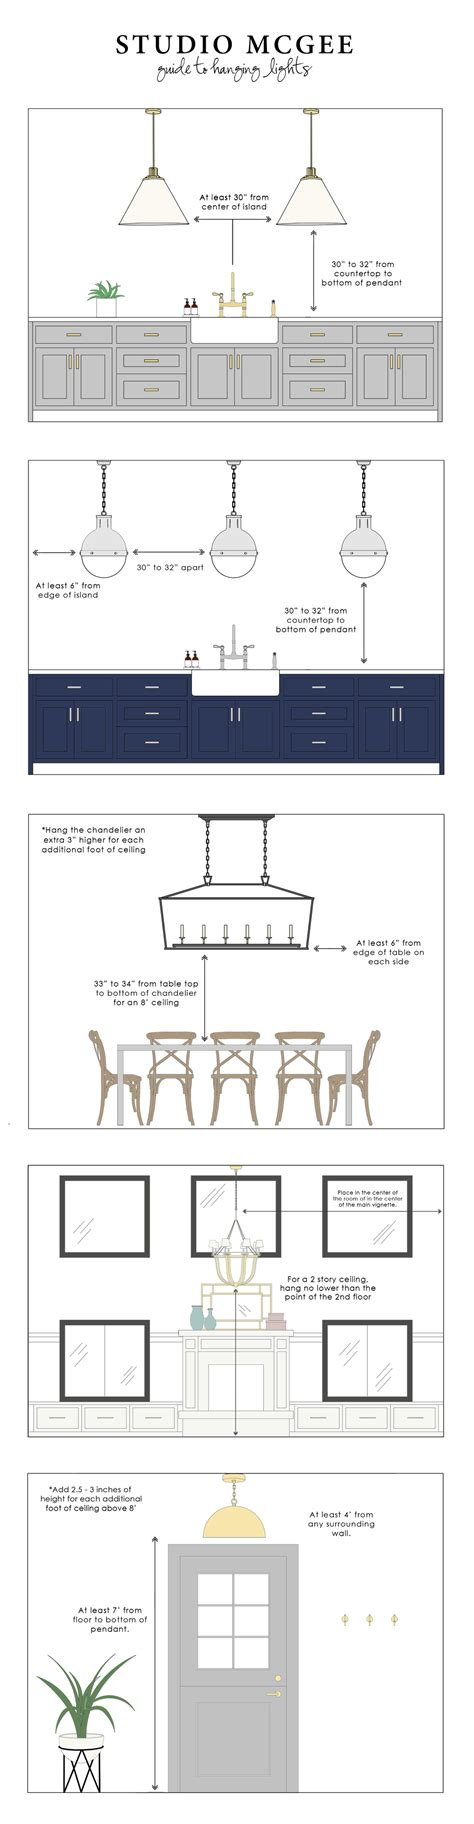 pendant lighting fixture placement guide for the kitchen studio mcgee s guide to hanging lights studio mcgee